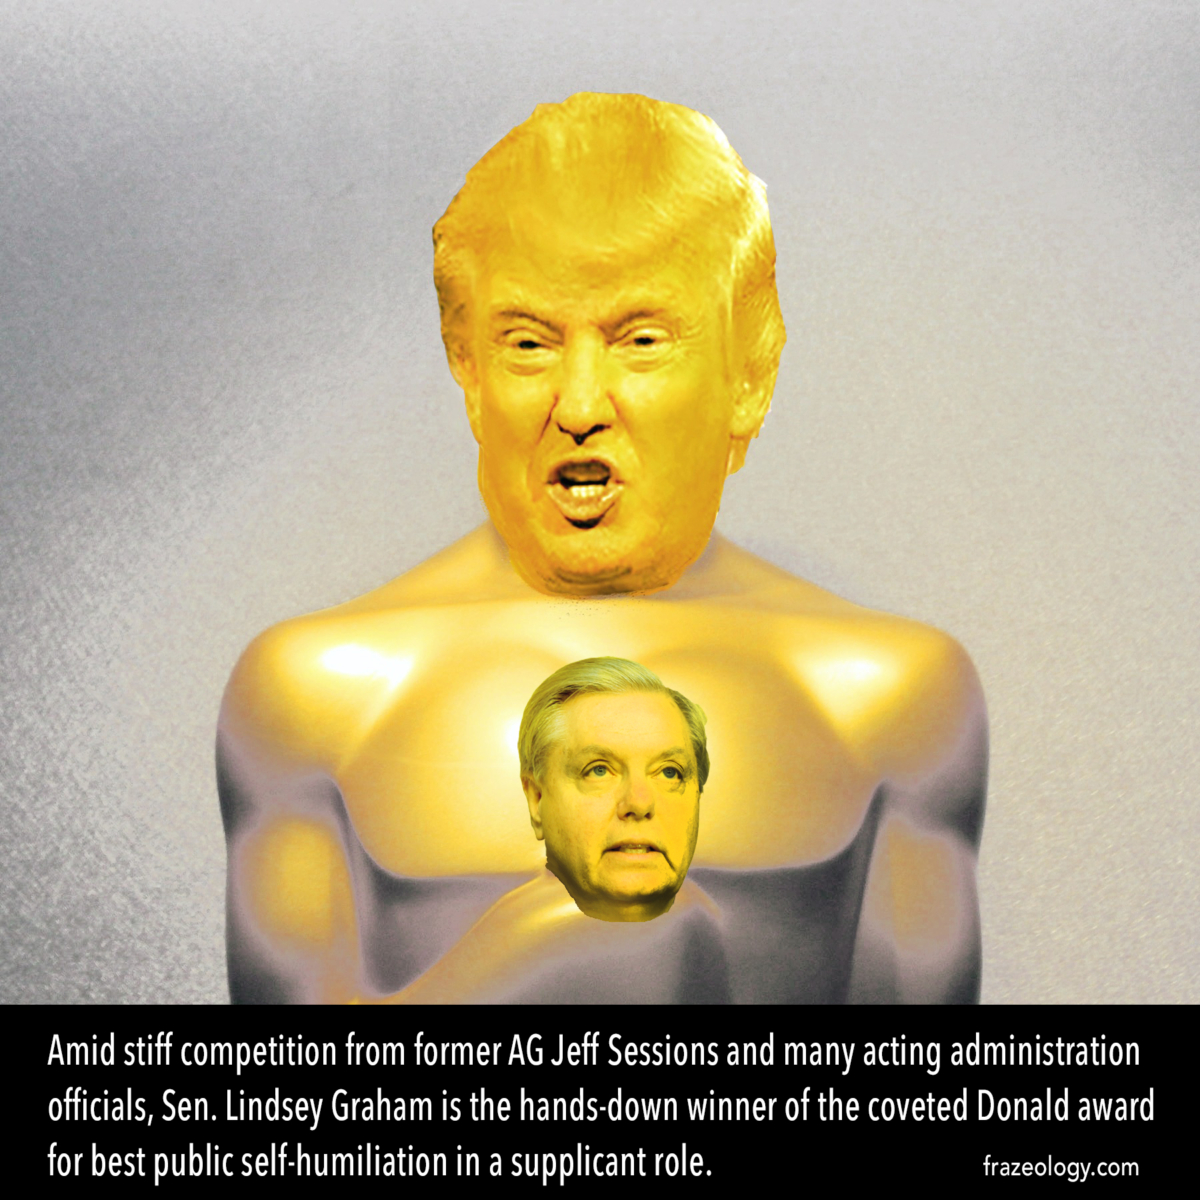 It's awards season. The Donald award goes to Lindsey Graham for best public self-humilation in a supplicant rolw.